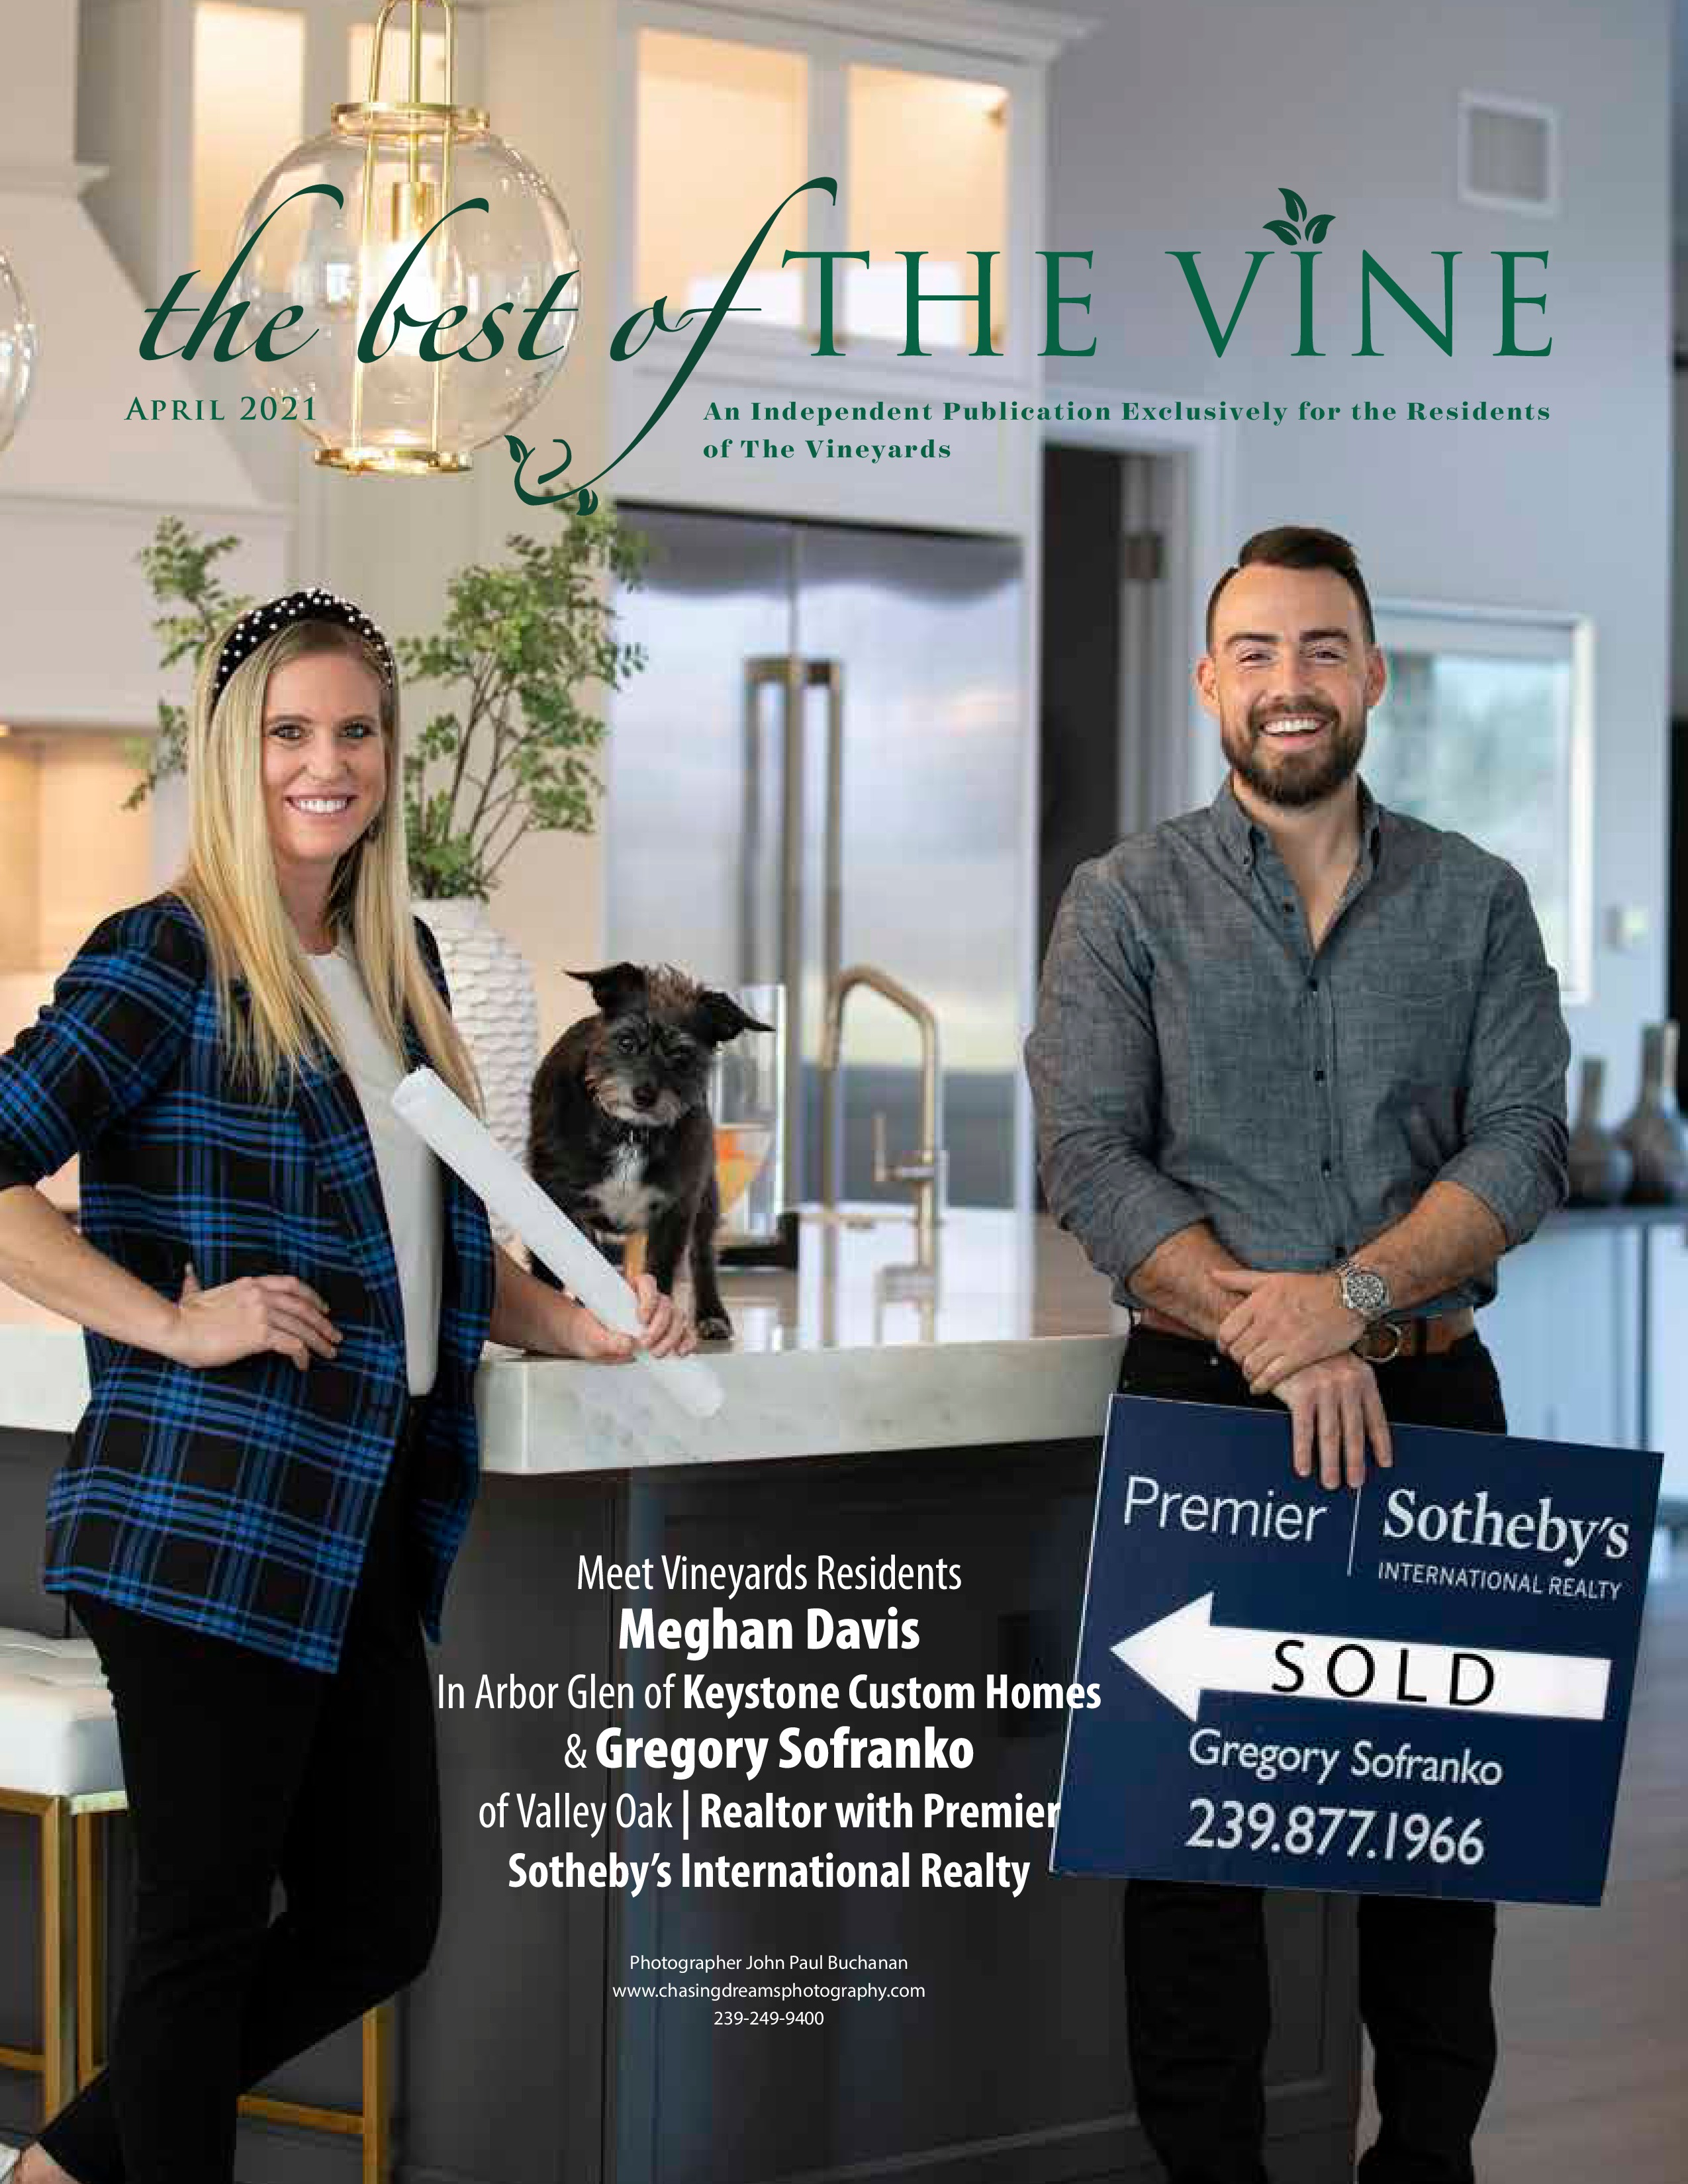 The Best of the Vine 2021-04-01